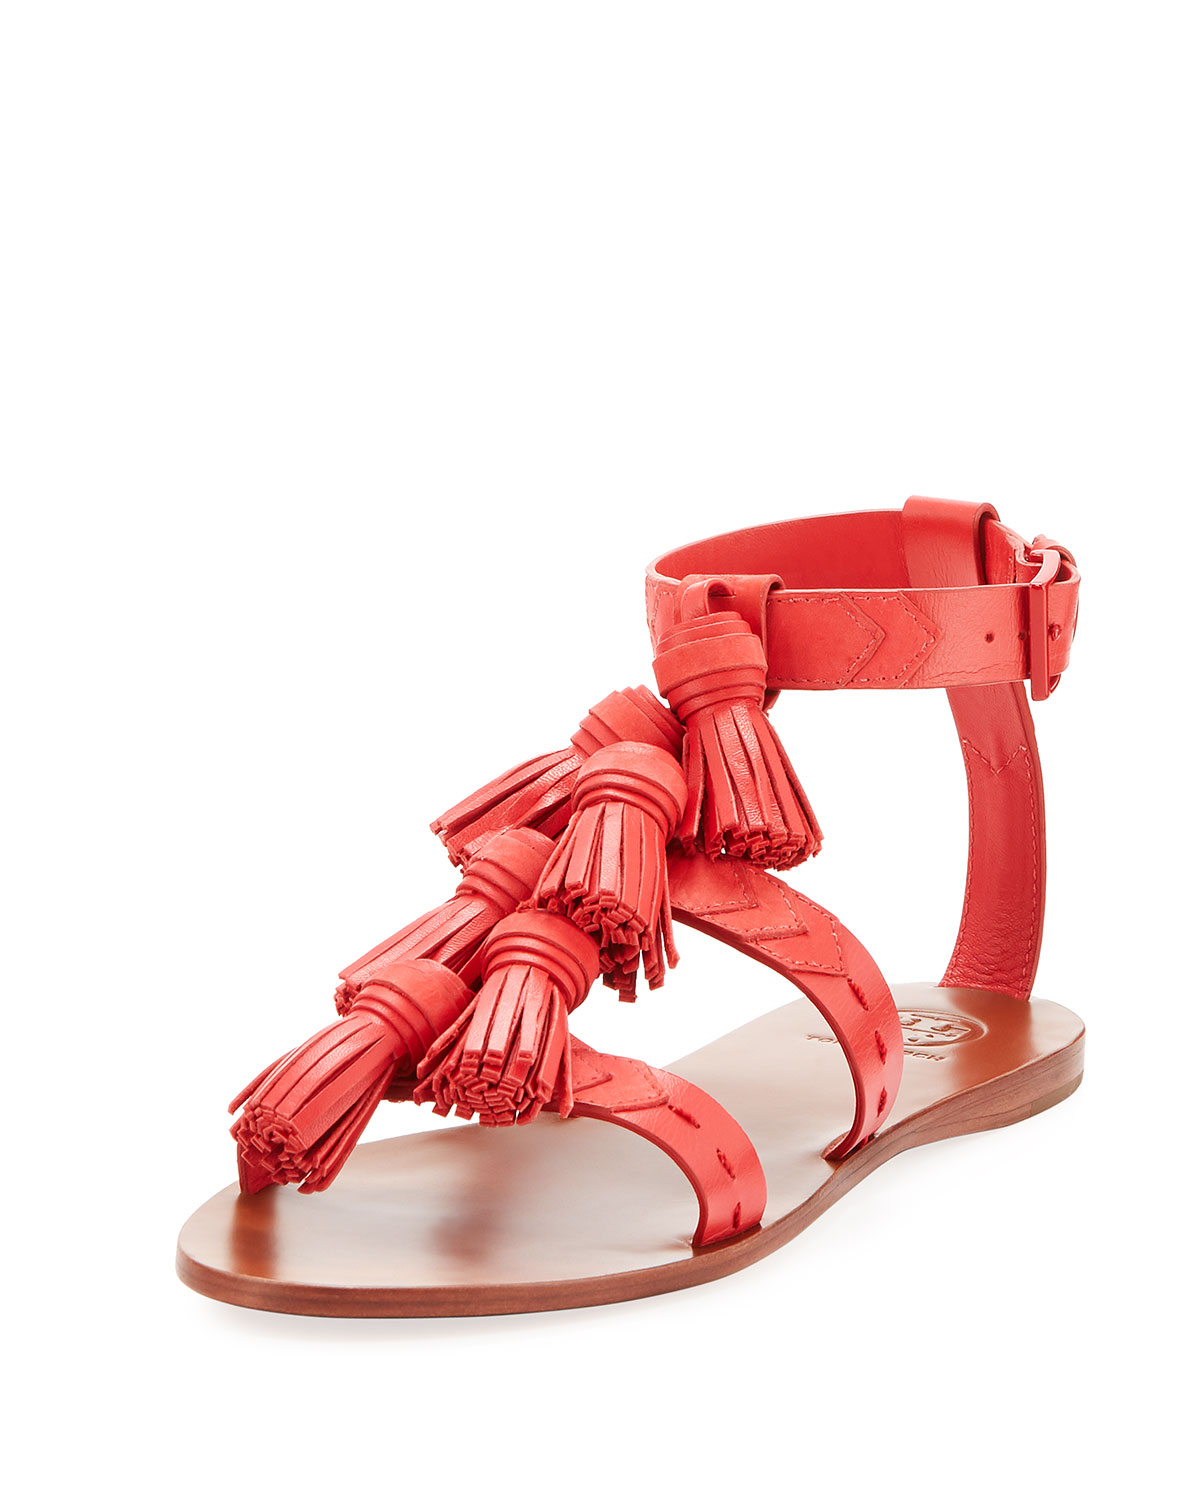 9f1db14e100f76 Tory Burch Weaver Leather Tassel Sandal